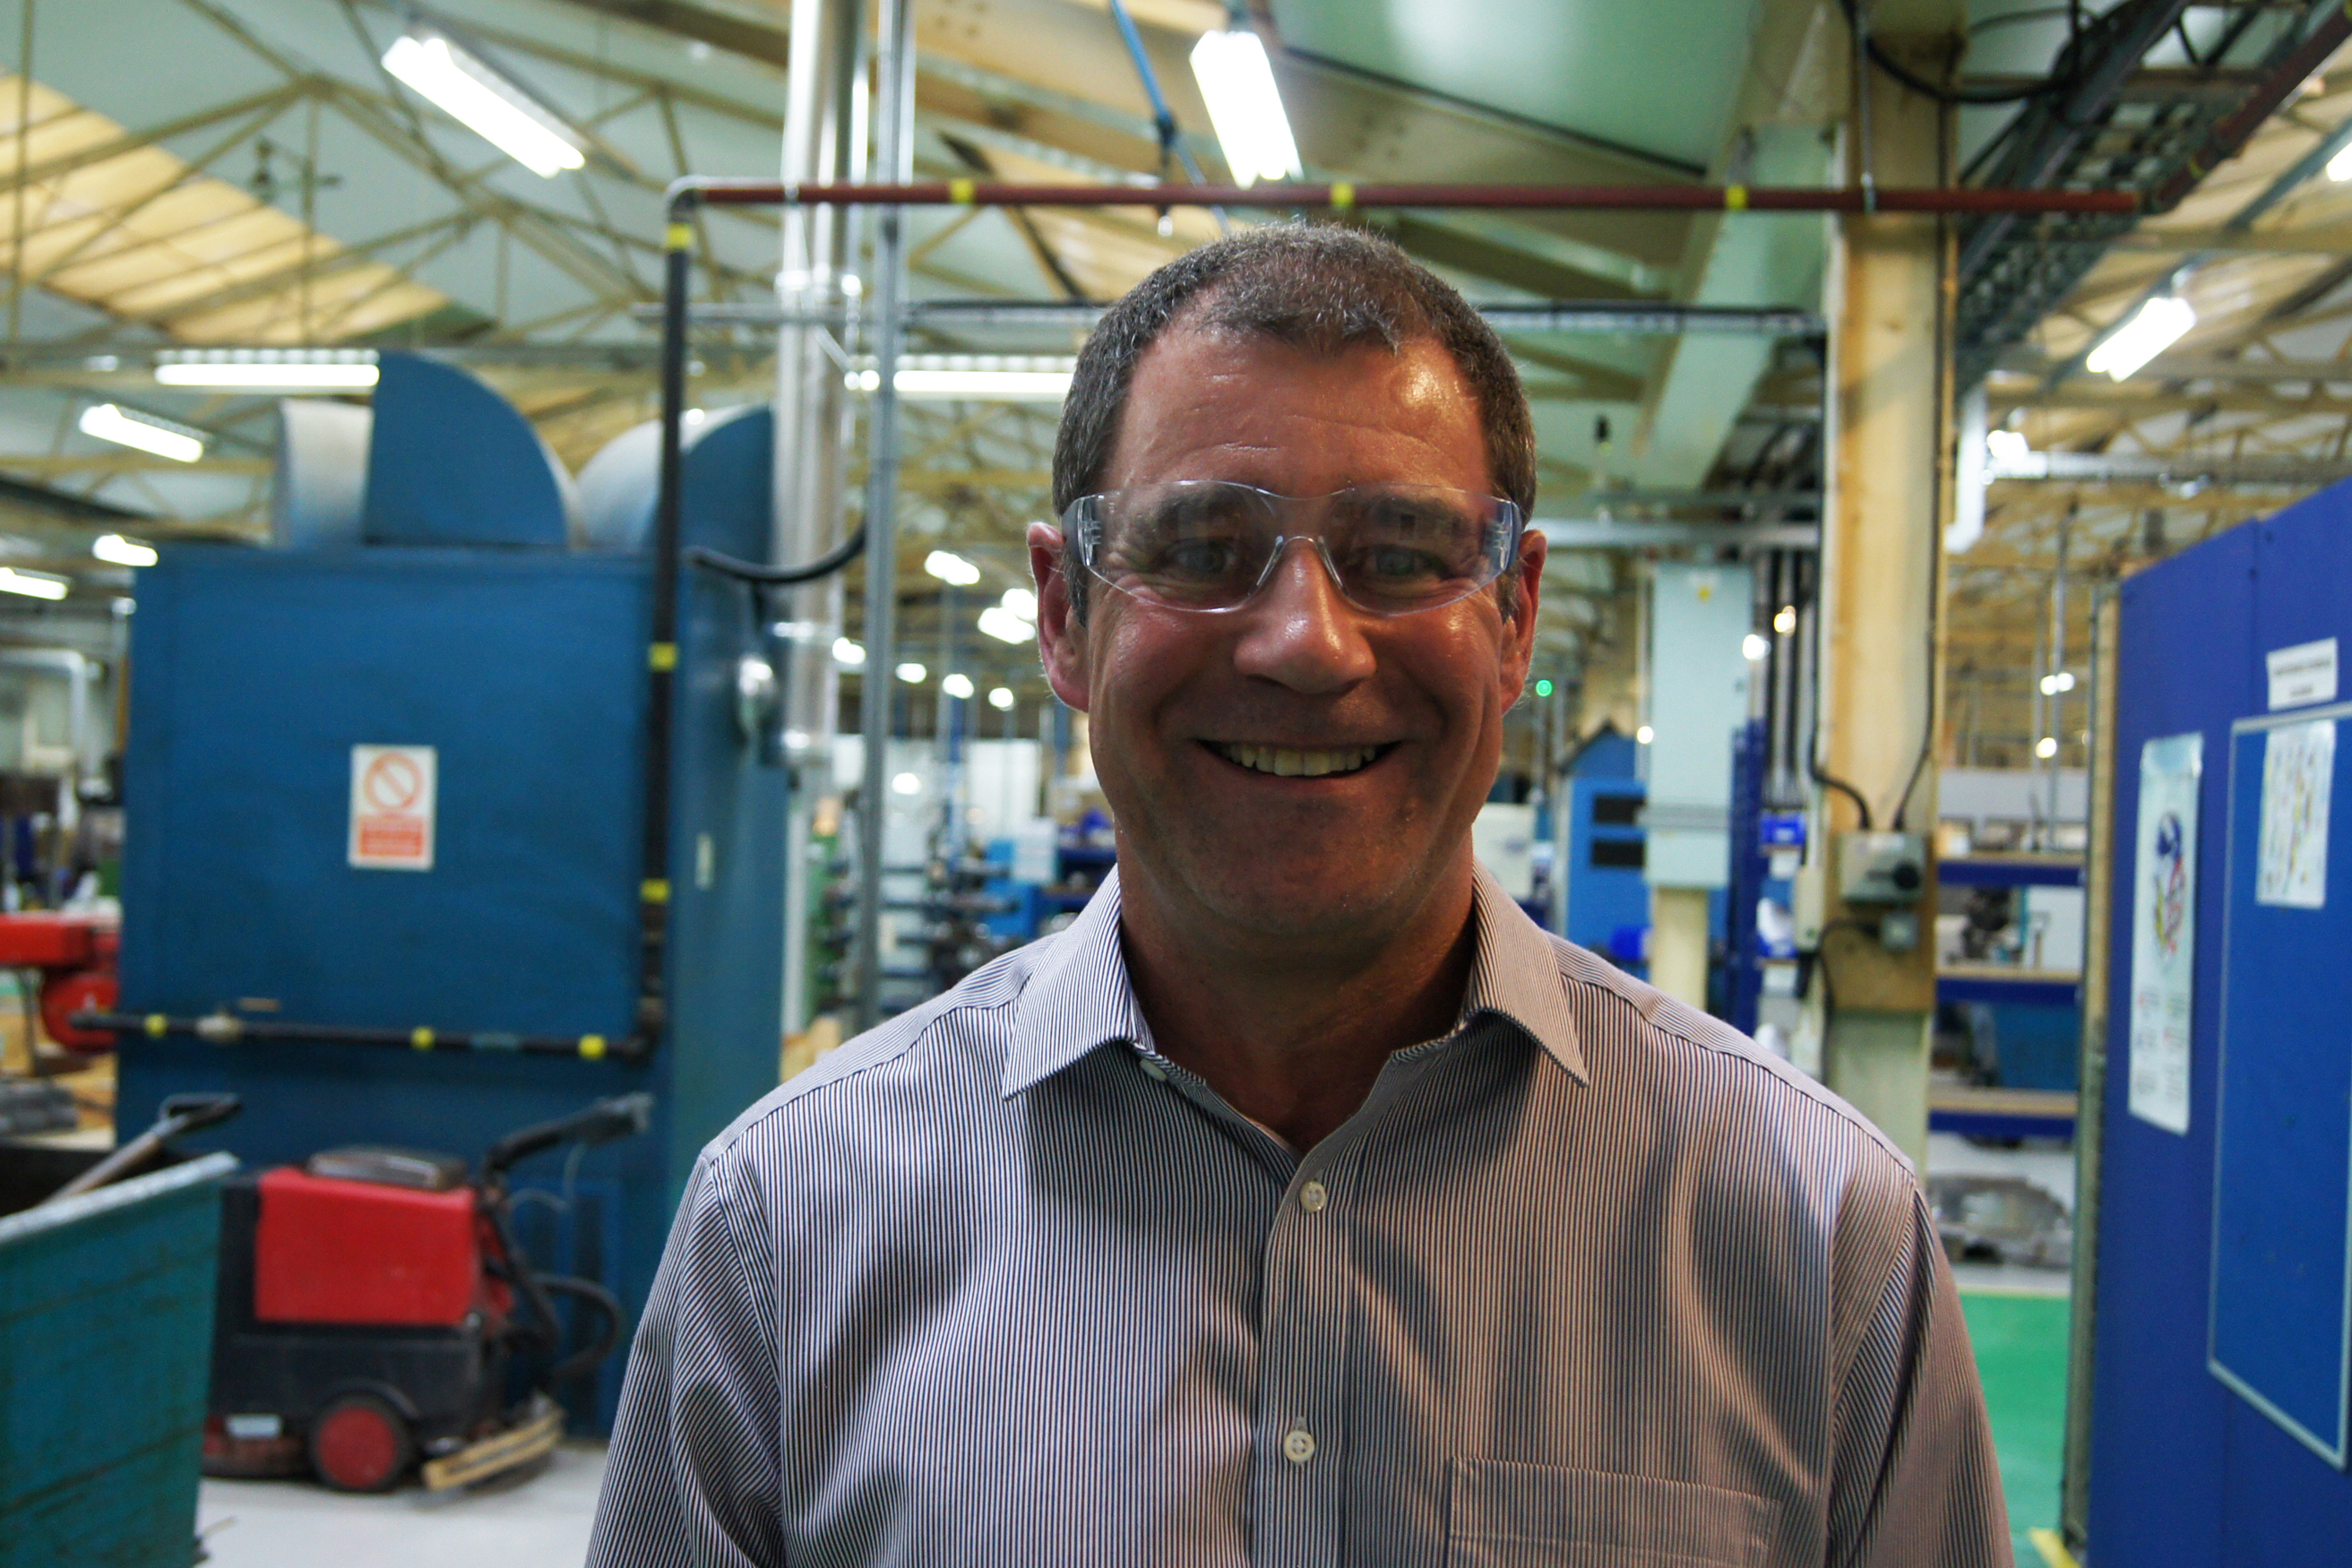 Oilgear's new service centre manager pitches for customer delight